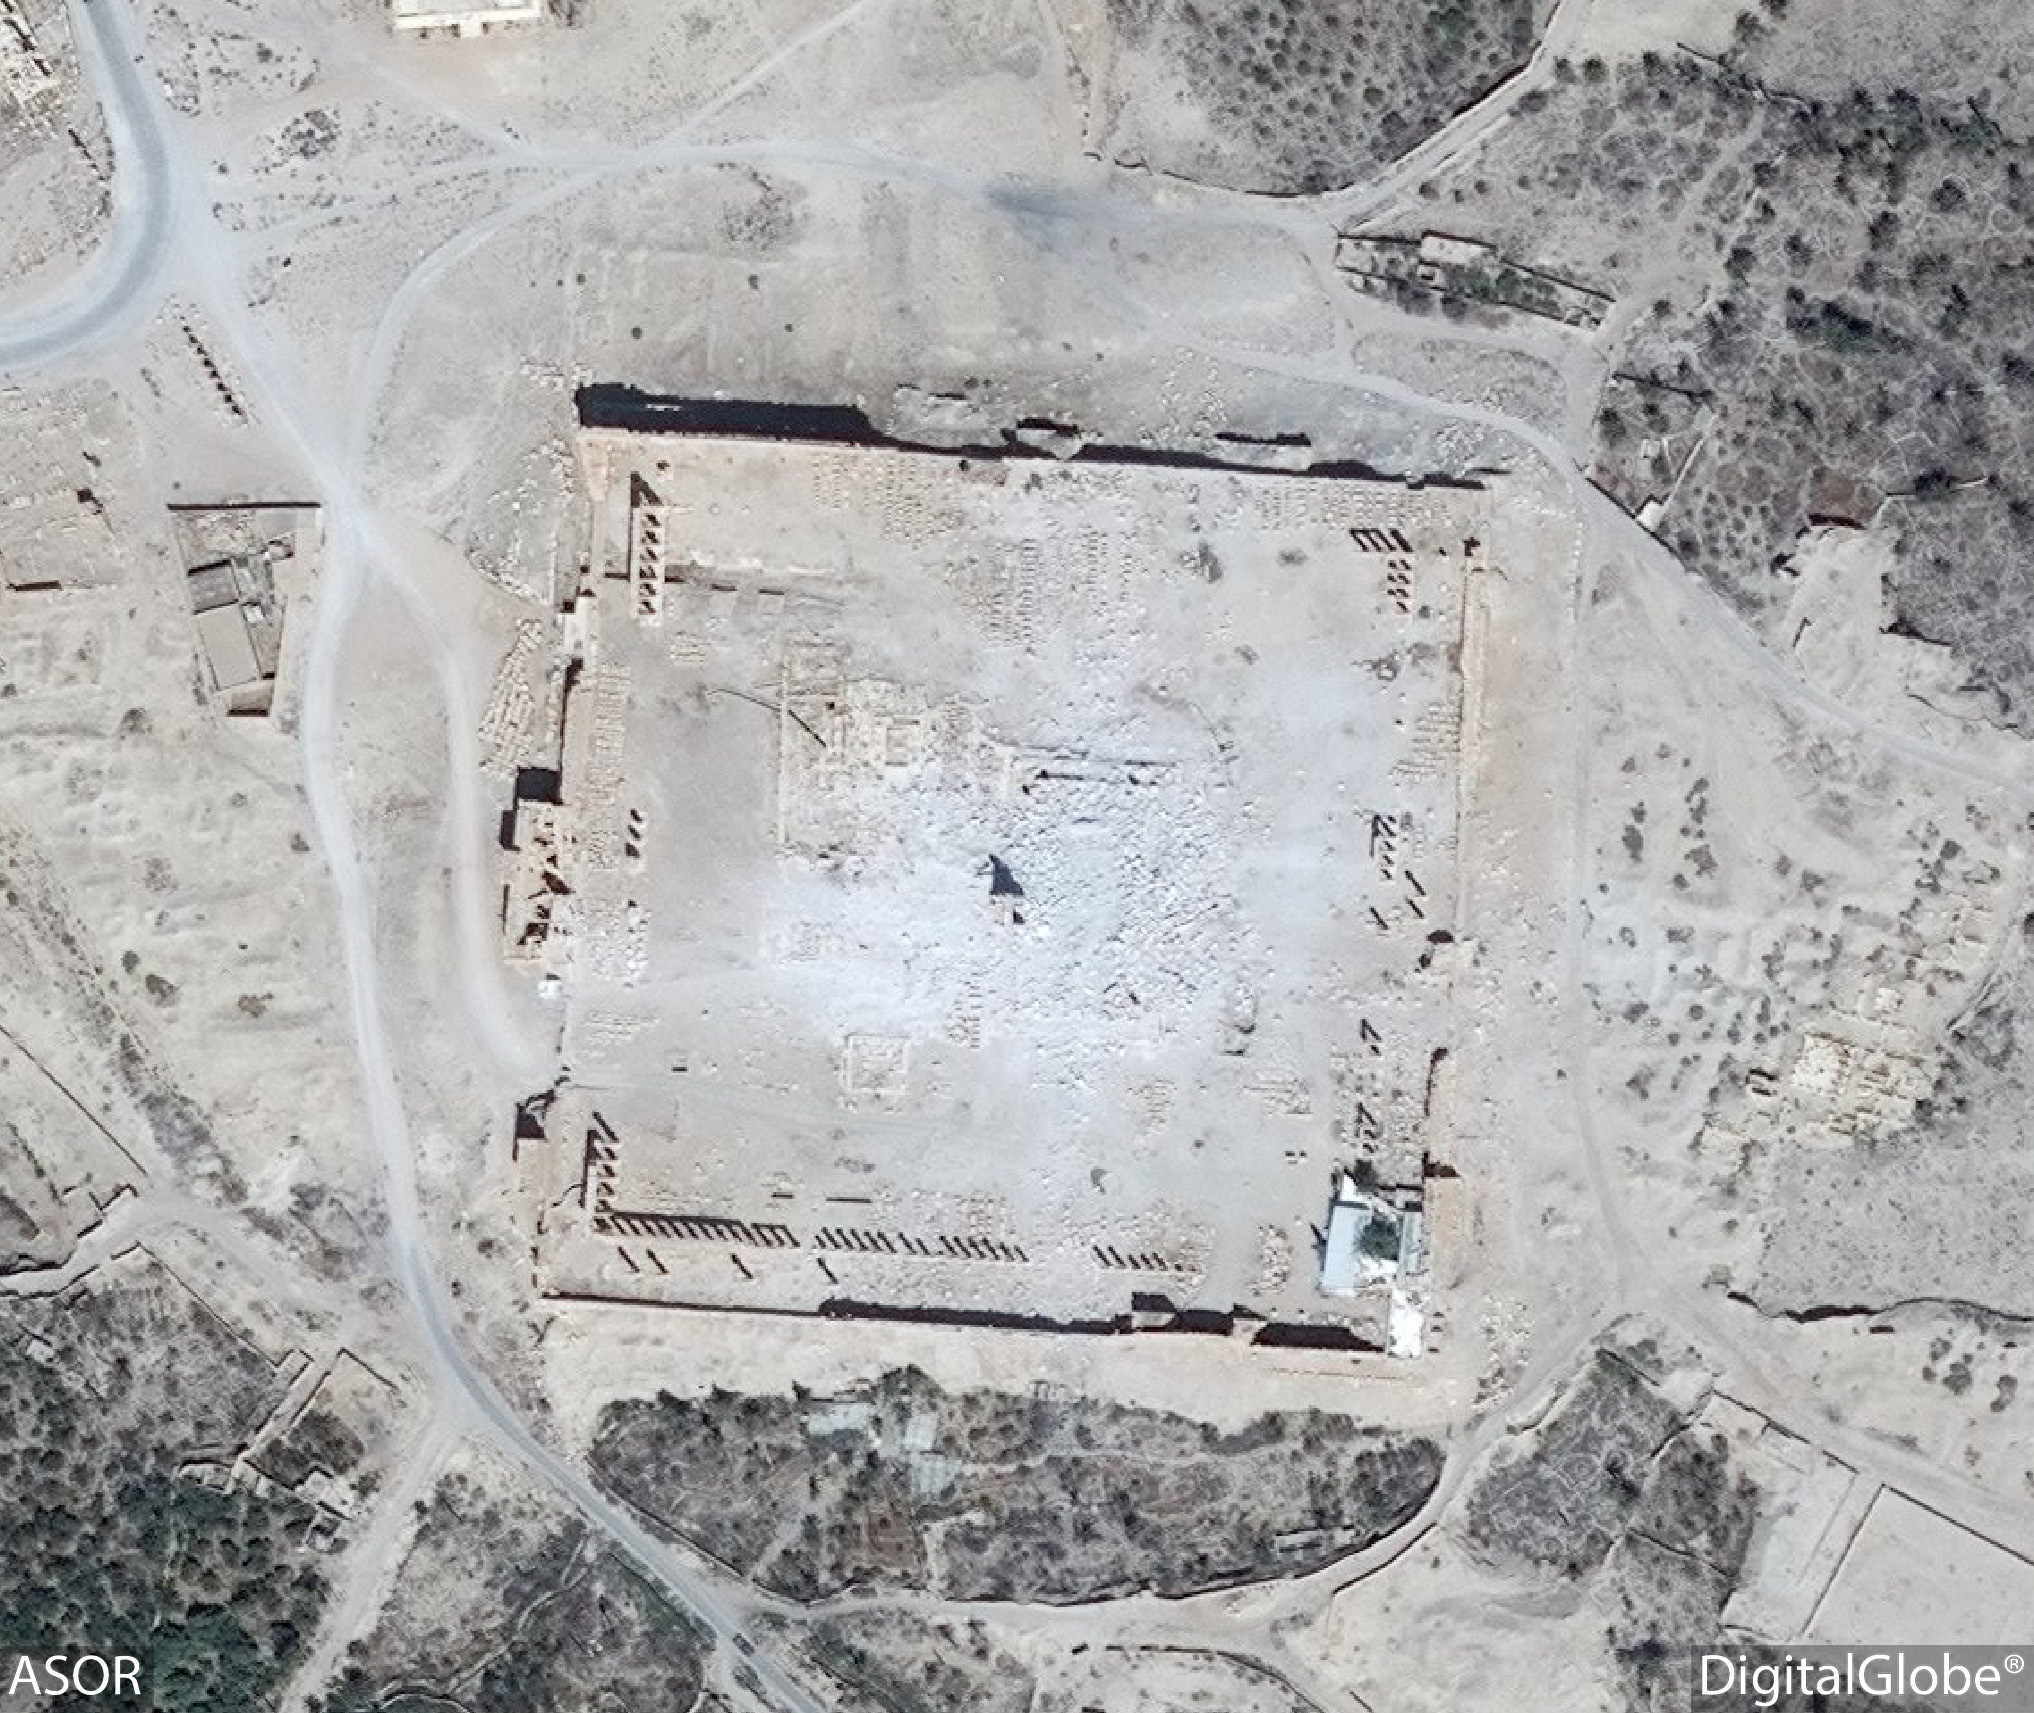 Figure 32. Satellite imagery of the Temple of Bel. Visible damage (DigitalGlobe; September 2, 2015).